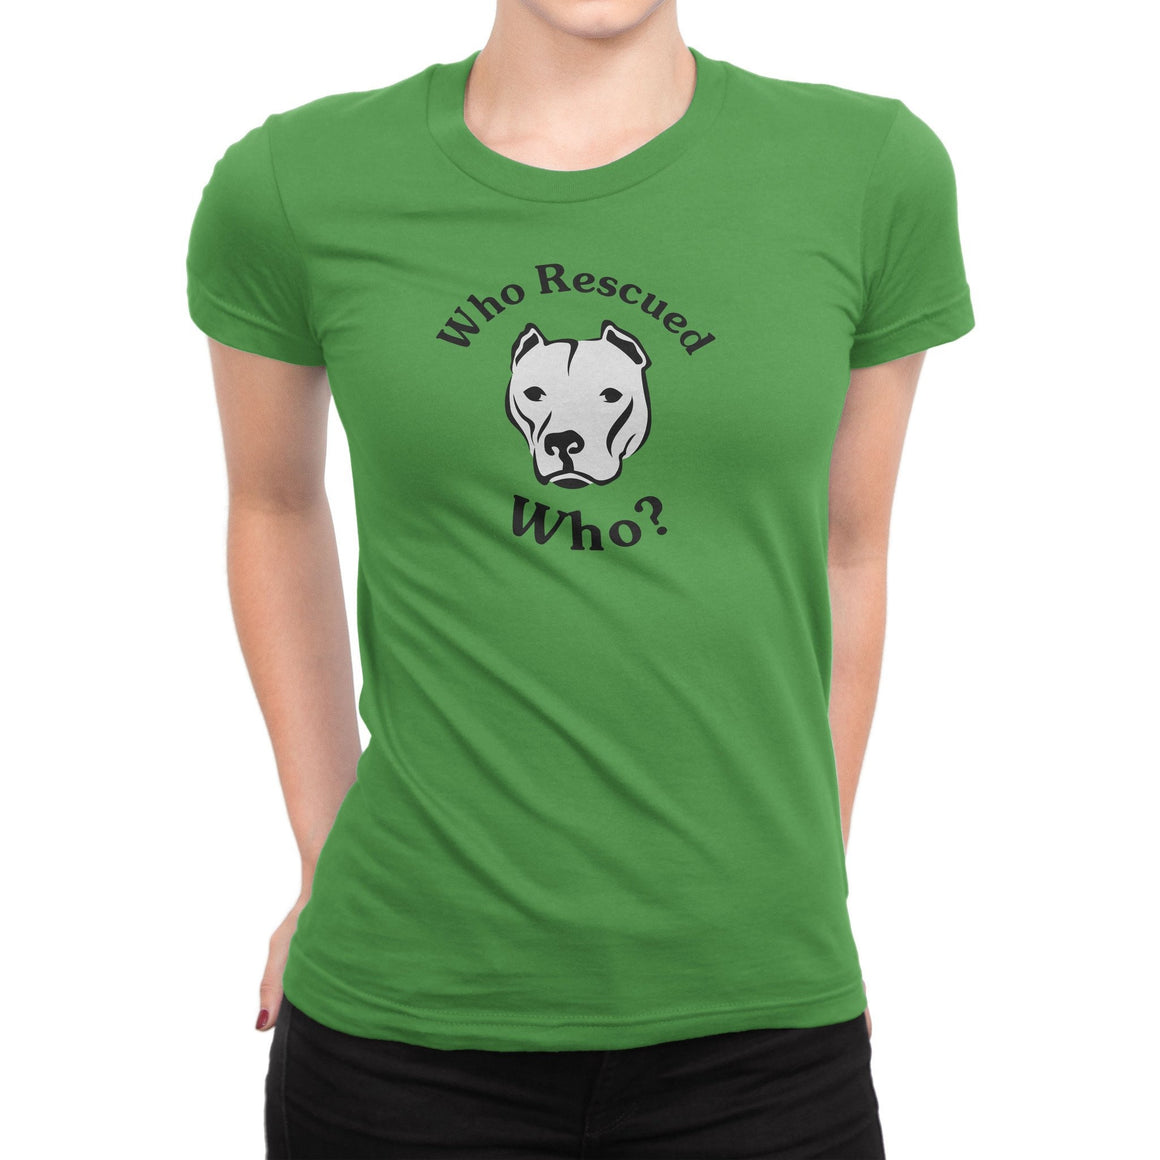 Who Rescued Who? Women's Pitbull Shirt